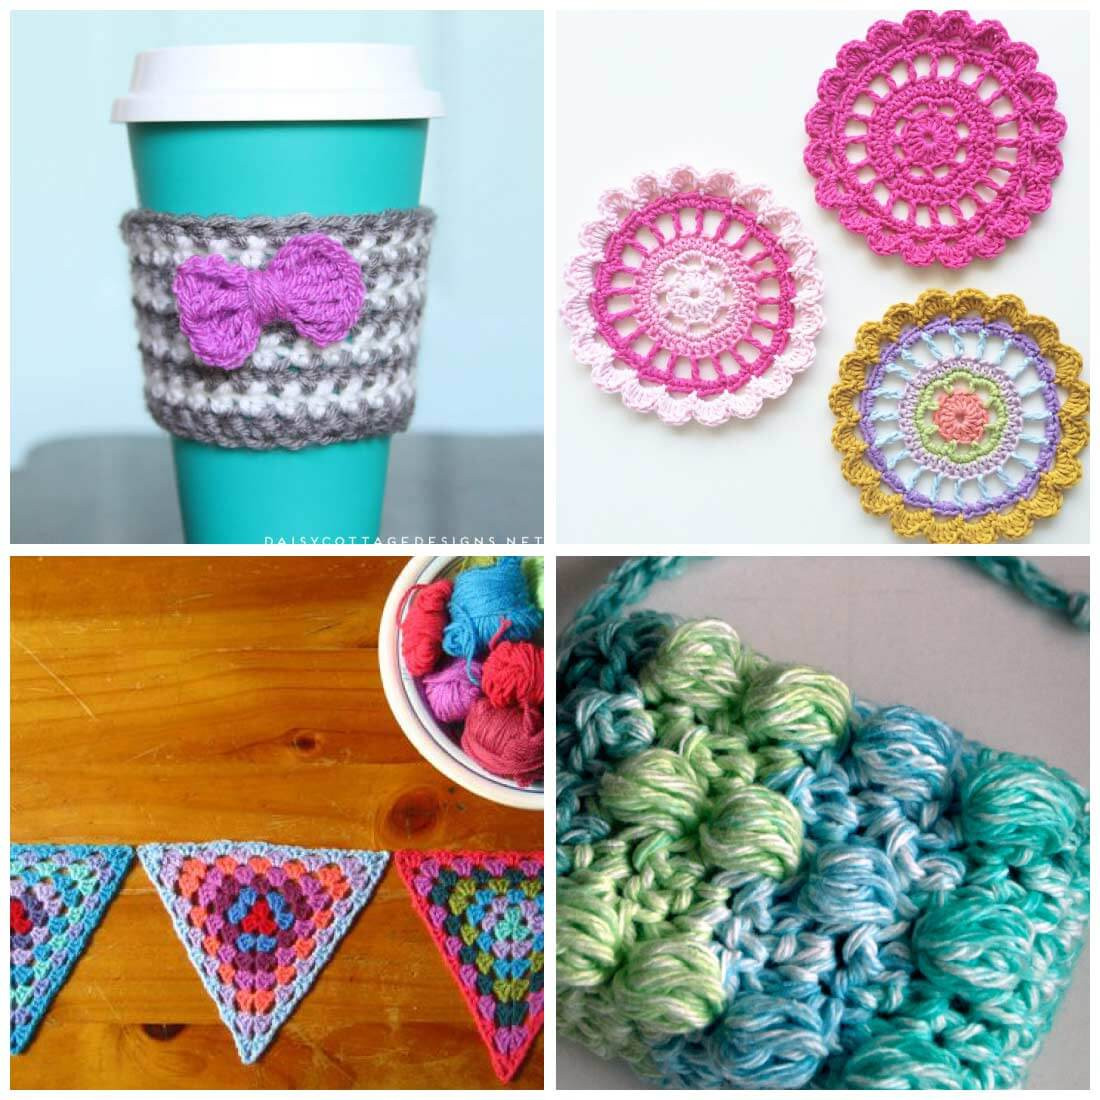 Unique Easy Fast Crochet Patterns Crochet and Knit Quick and Easy Crochet Patterns for Beginners Of Awesome 48 Photos Quick and Easy Crochet Patterns for Beginners